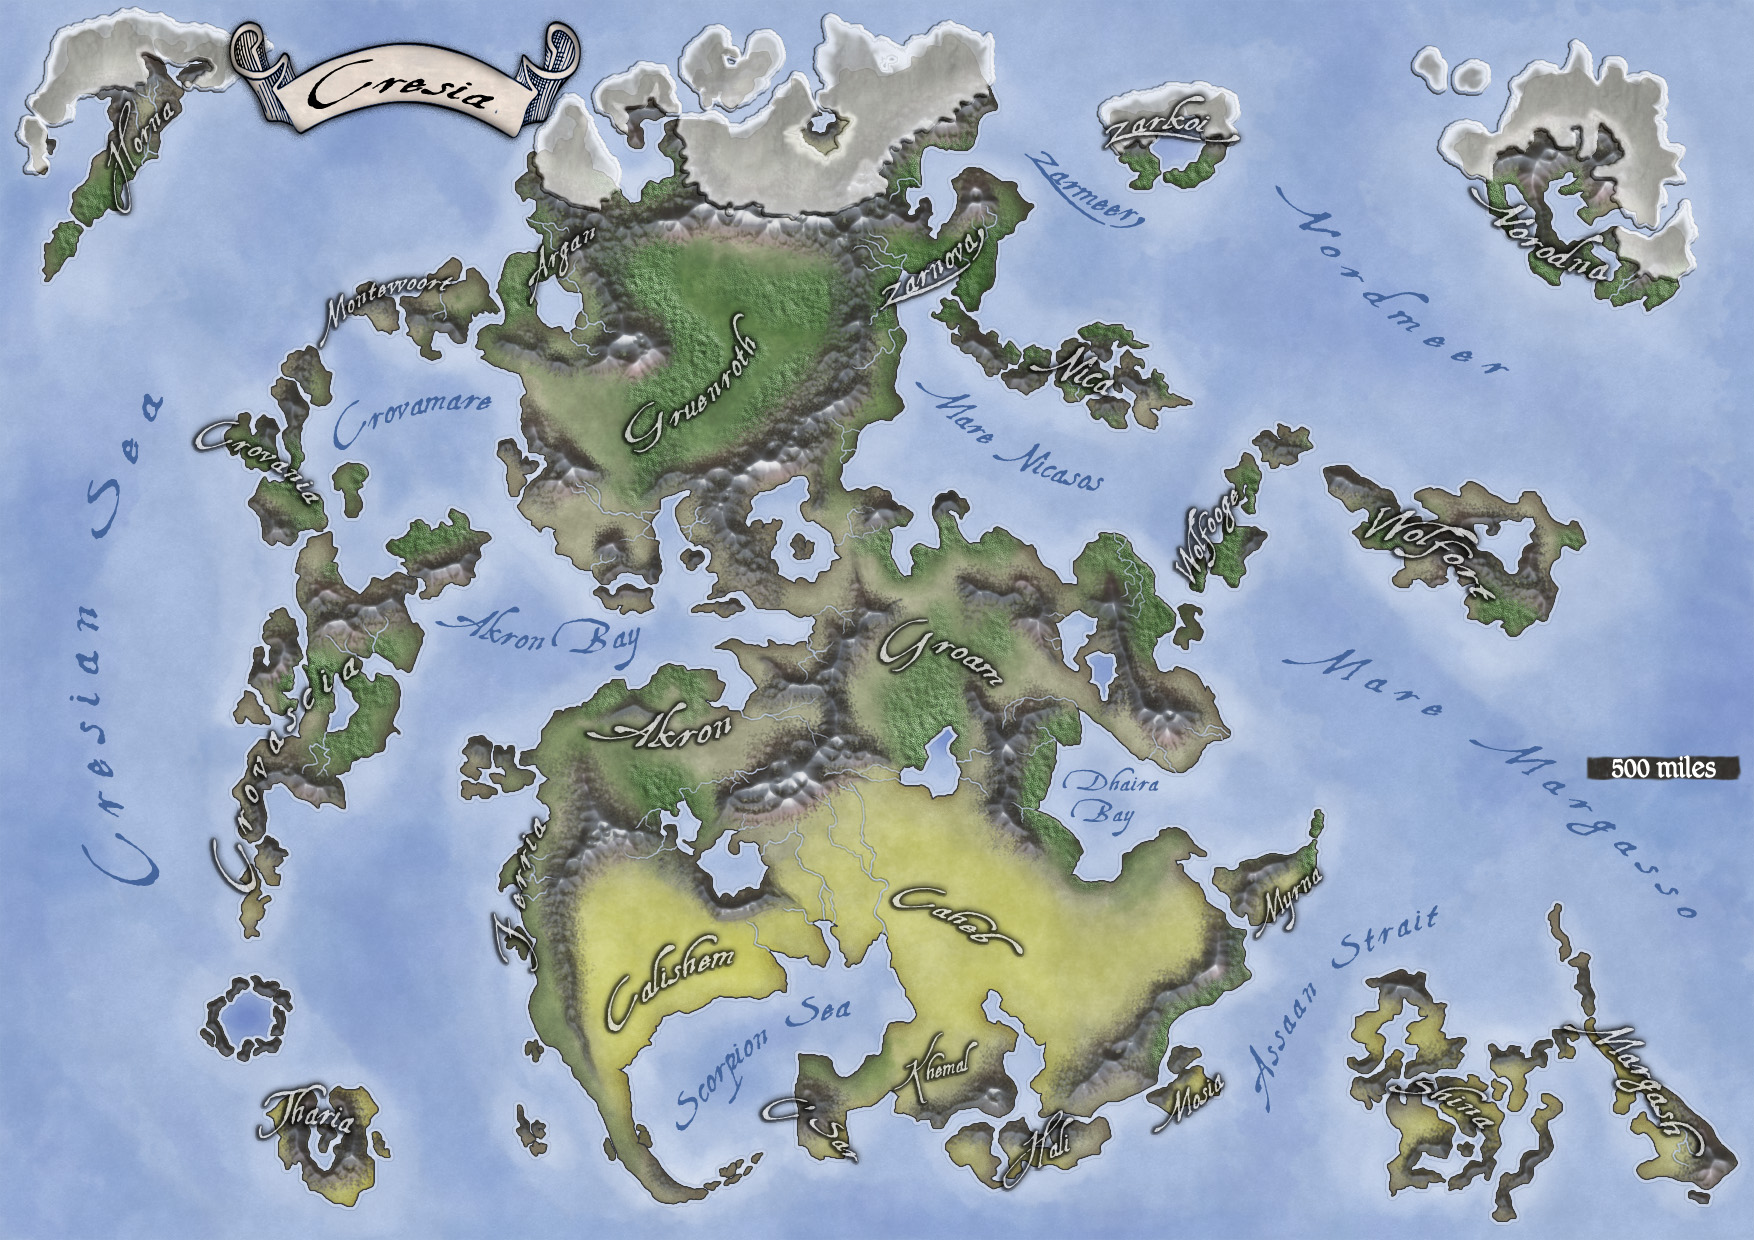 Cresia continent map